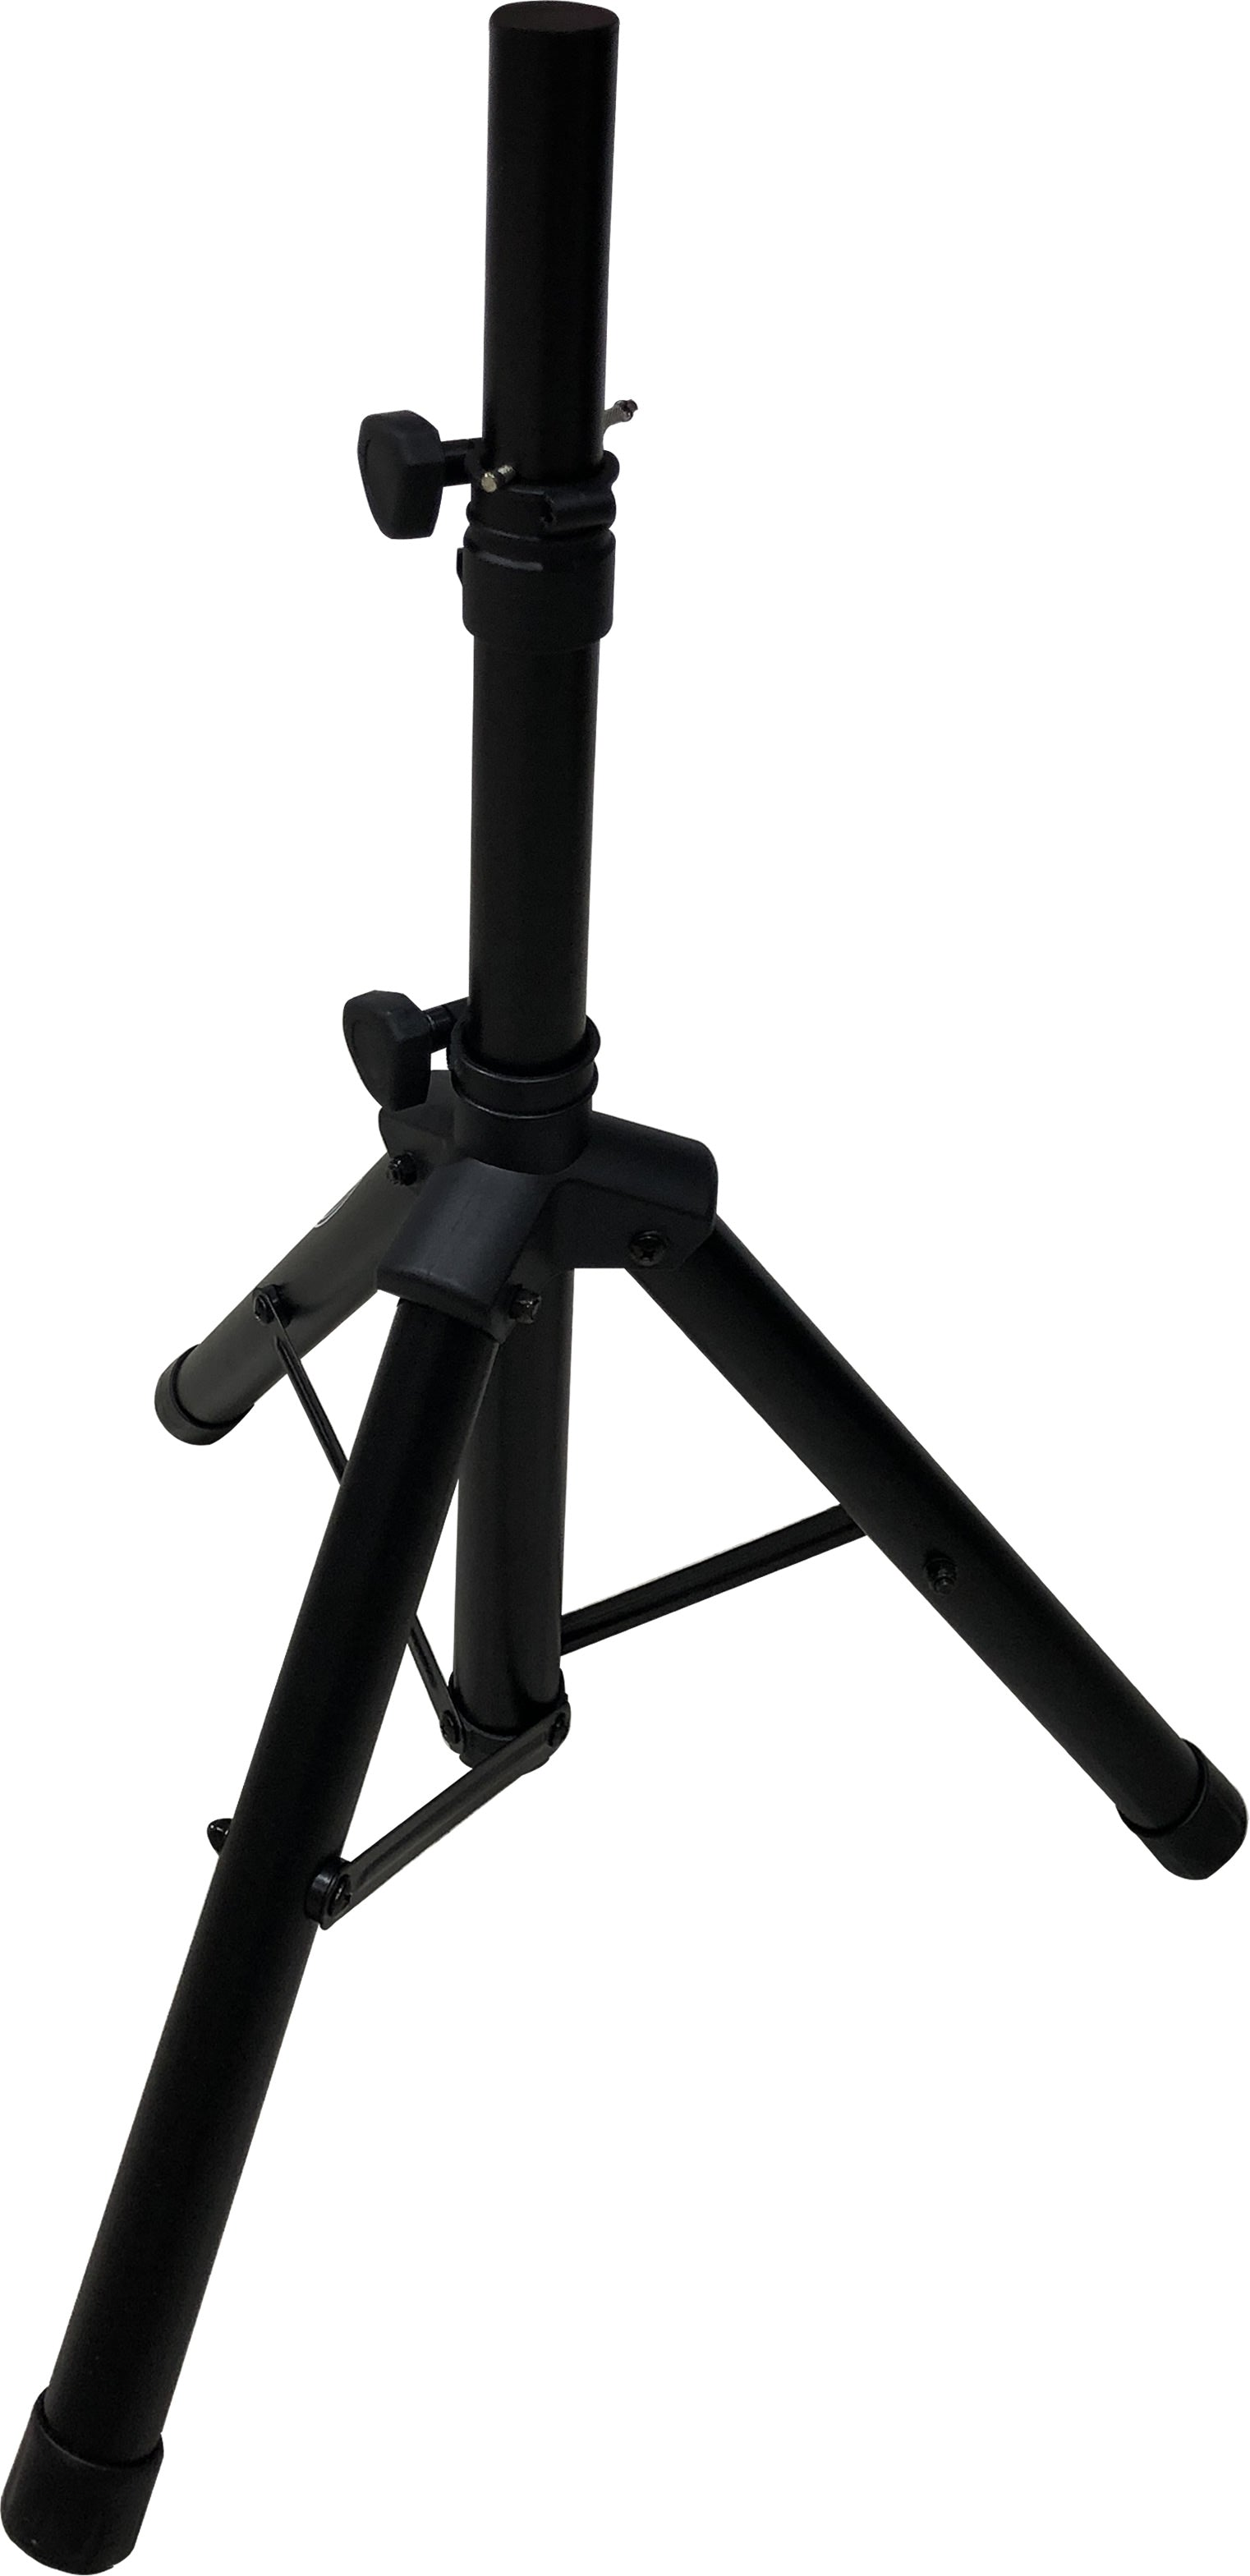 "96-4001-15 Heavy Duty Adjustable Tripod Speaker Stand for 15"" Speaker Box"